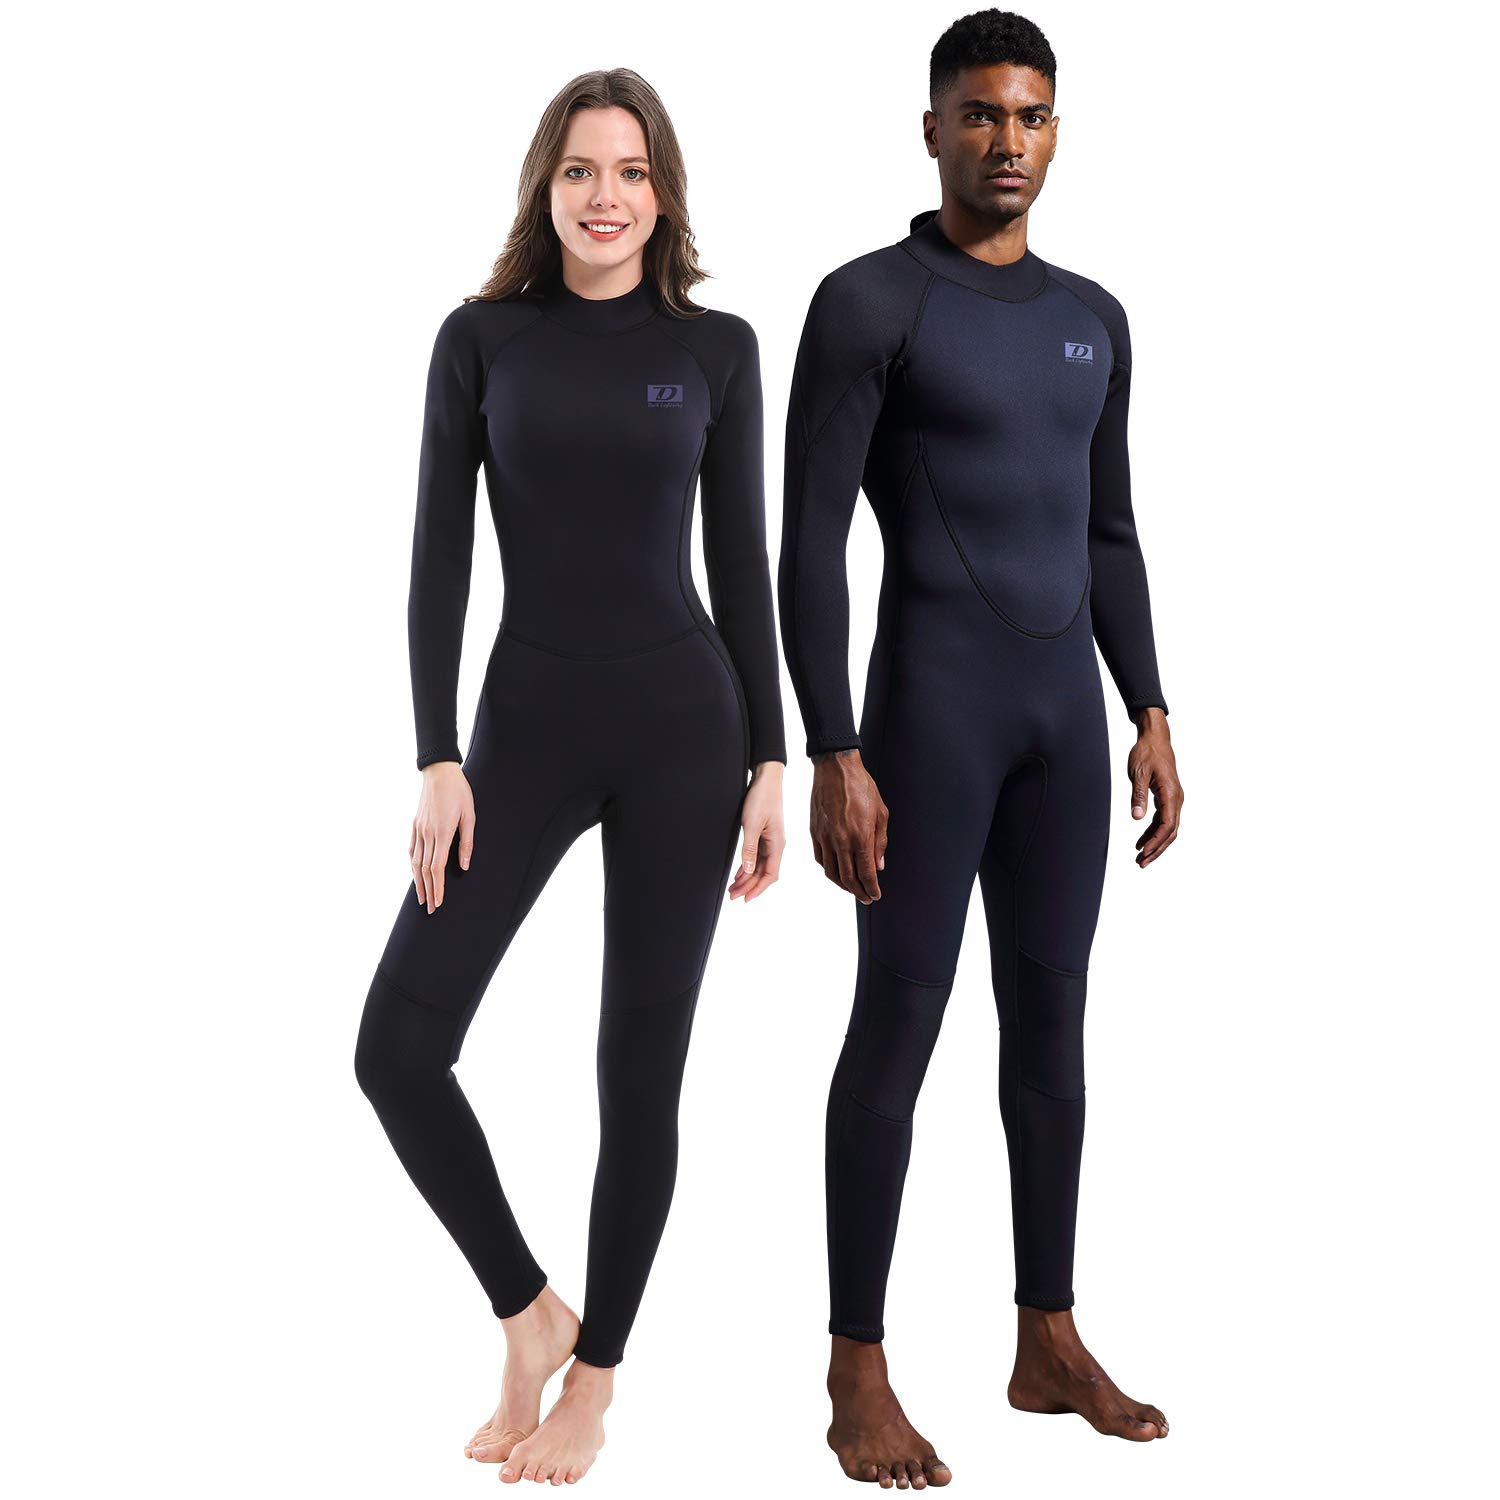 Dark Lightning Full Body Mens Scuba Neoprene Wetsuit, 5/4mm Premium Stretch CR Diving Wet Suits in Cold Water, Suitable for Snorkeling/Kayaking/Canoeing, Black,M Size